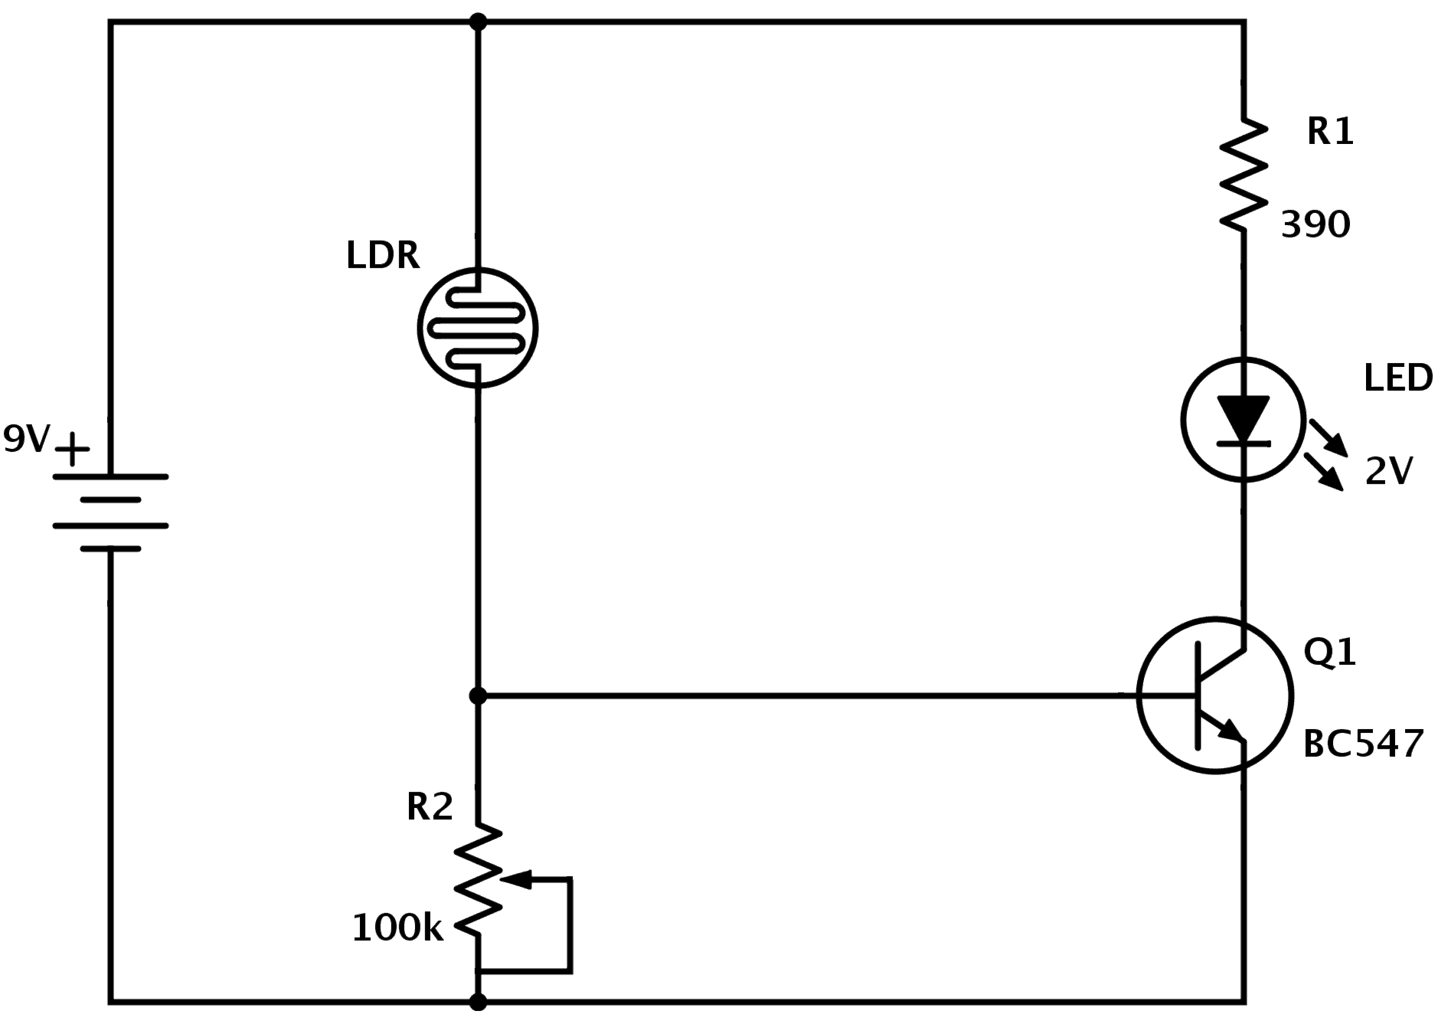 circuit diagram how to read and understand any schematic rh build electronic circuits com Electronic Circuit Schematic for LCD Electronic Circuit Schematic for LCD